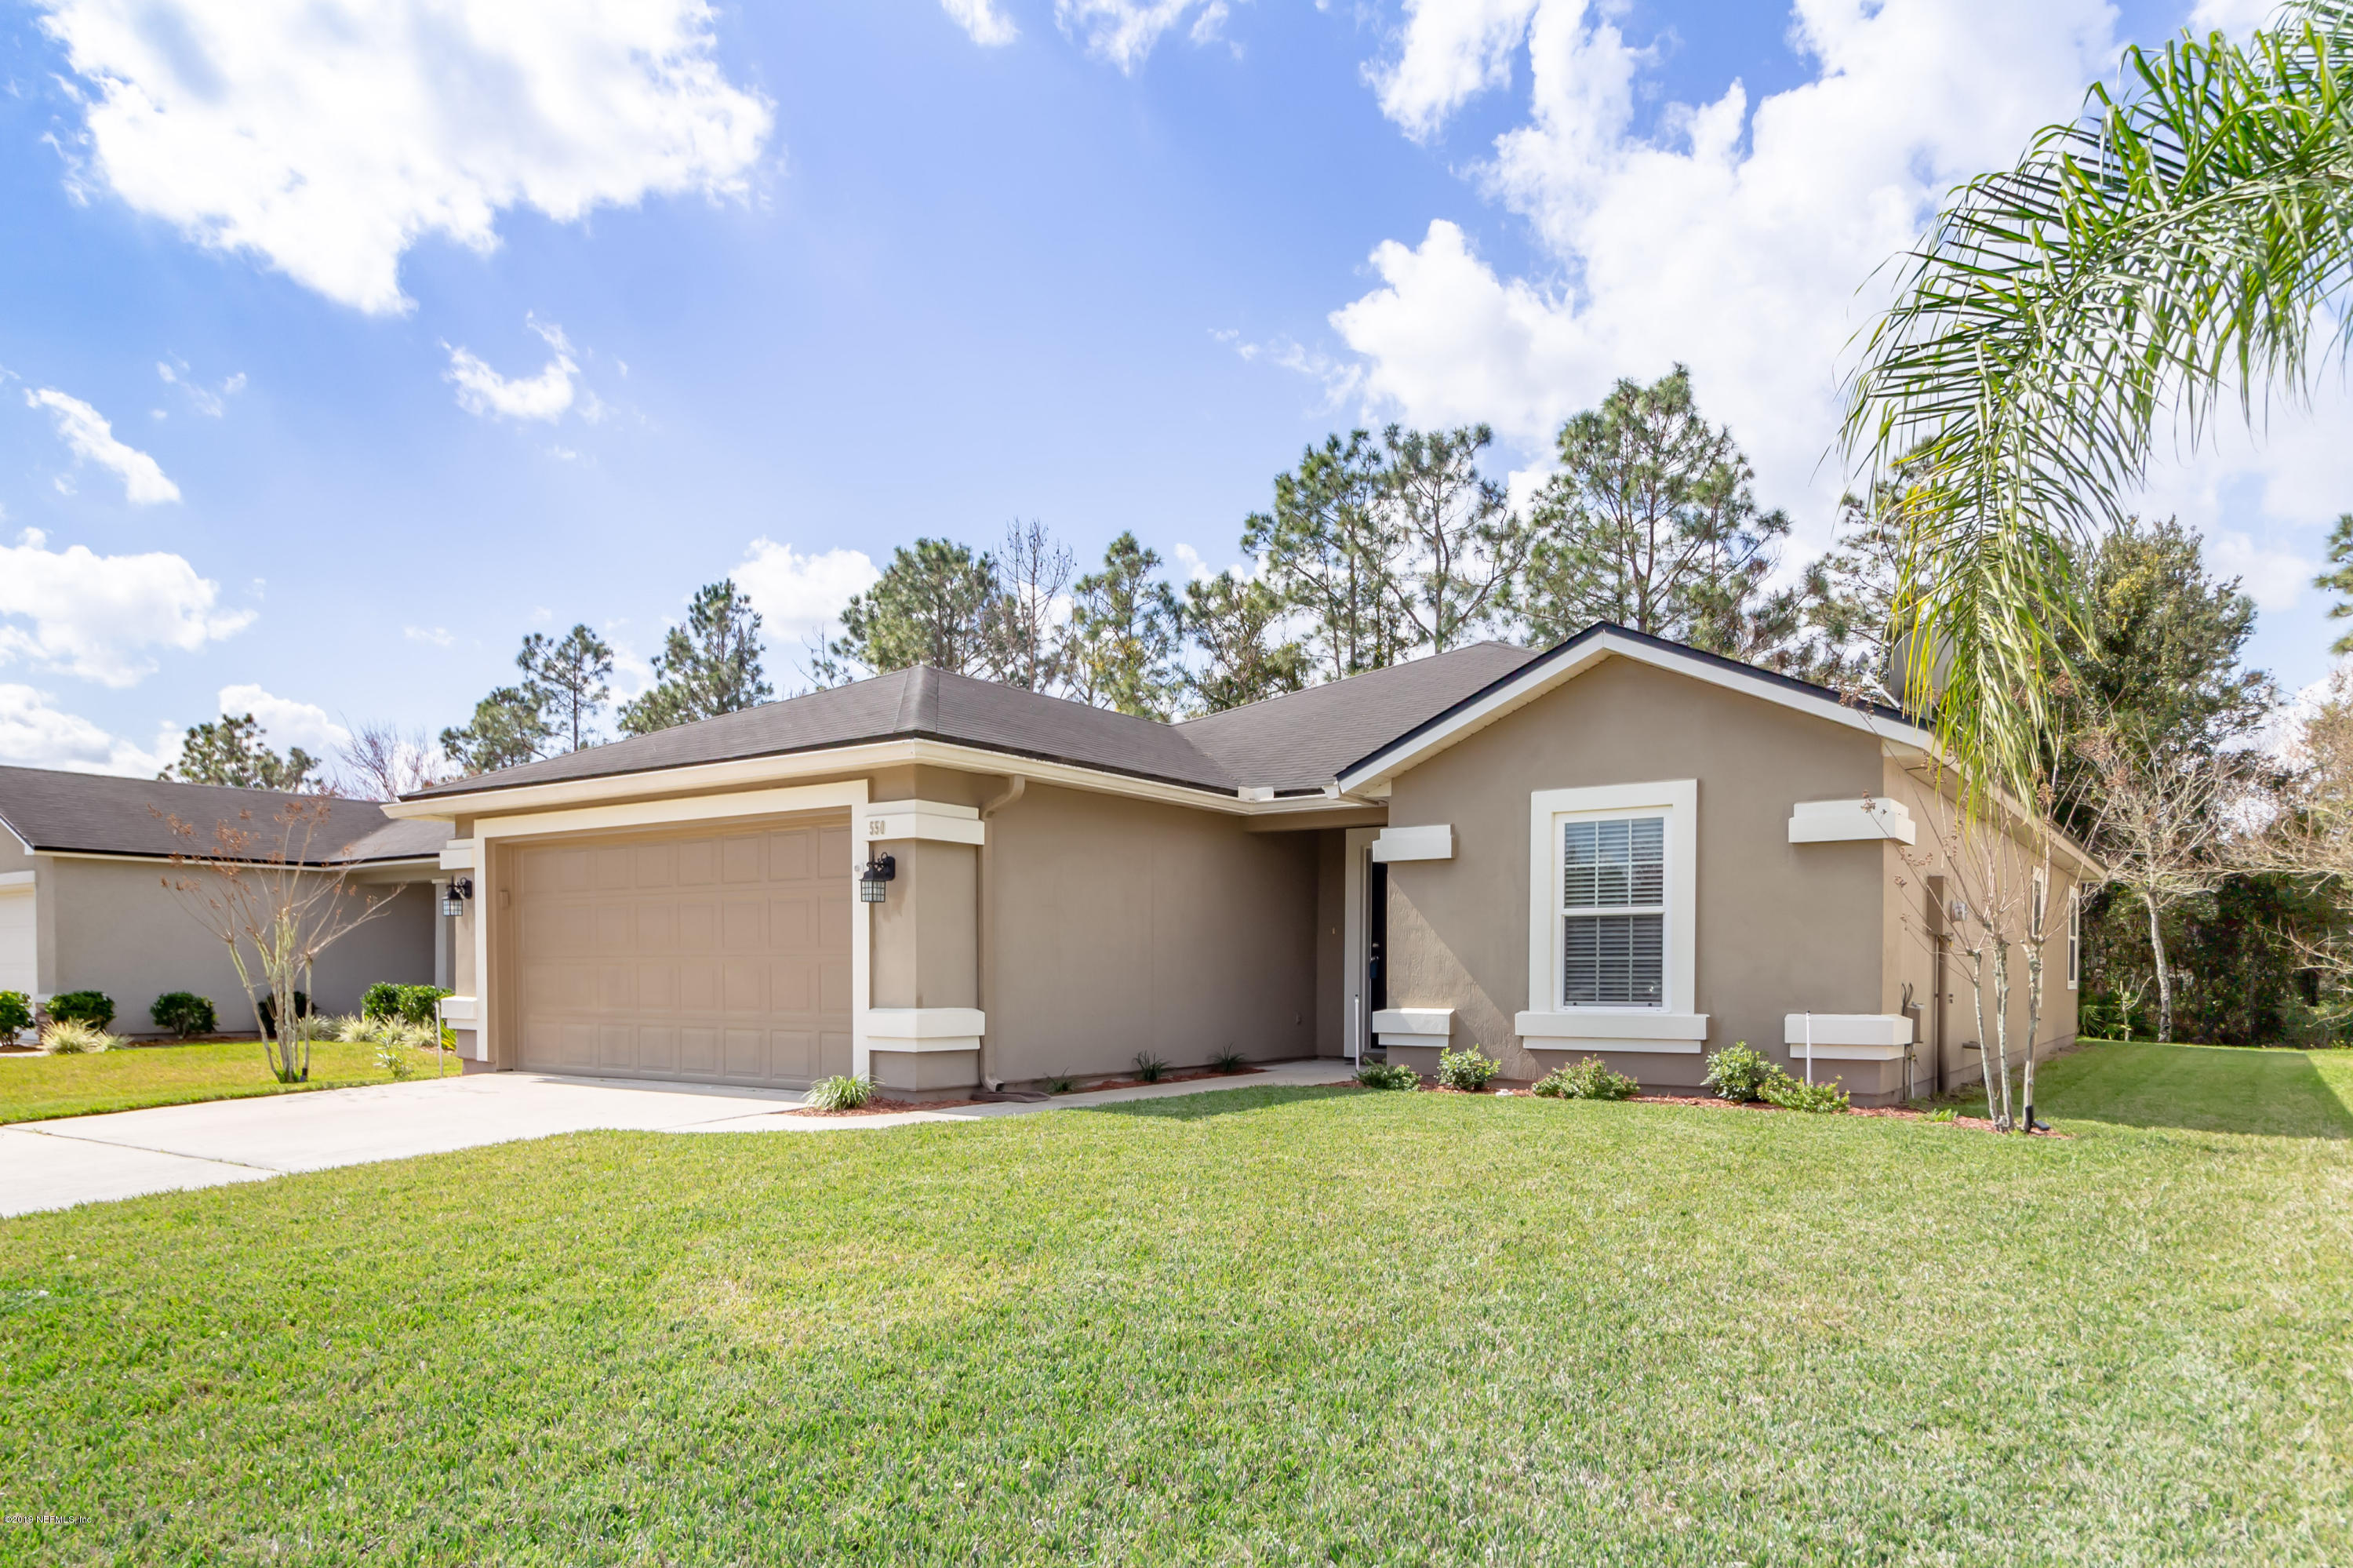 550 S ABERDEENSHIRE DR, Julington Creek in ST. JOHNS County, FL 32259 Home for Sale